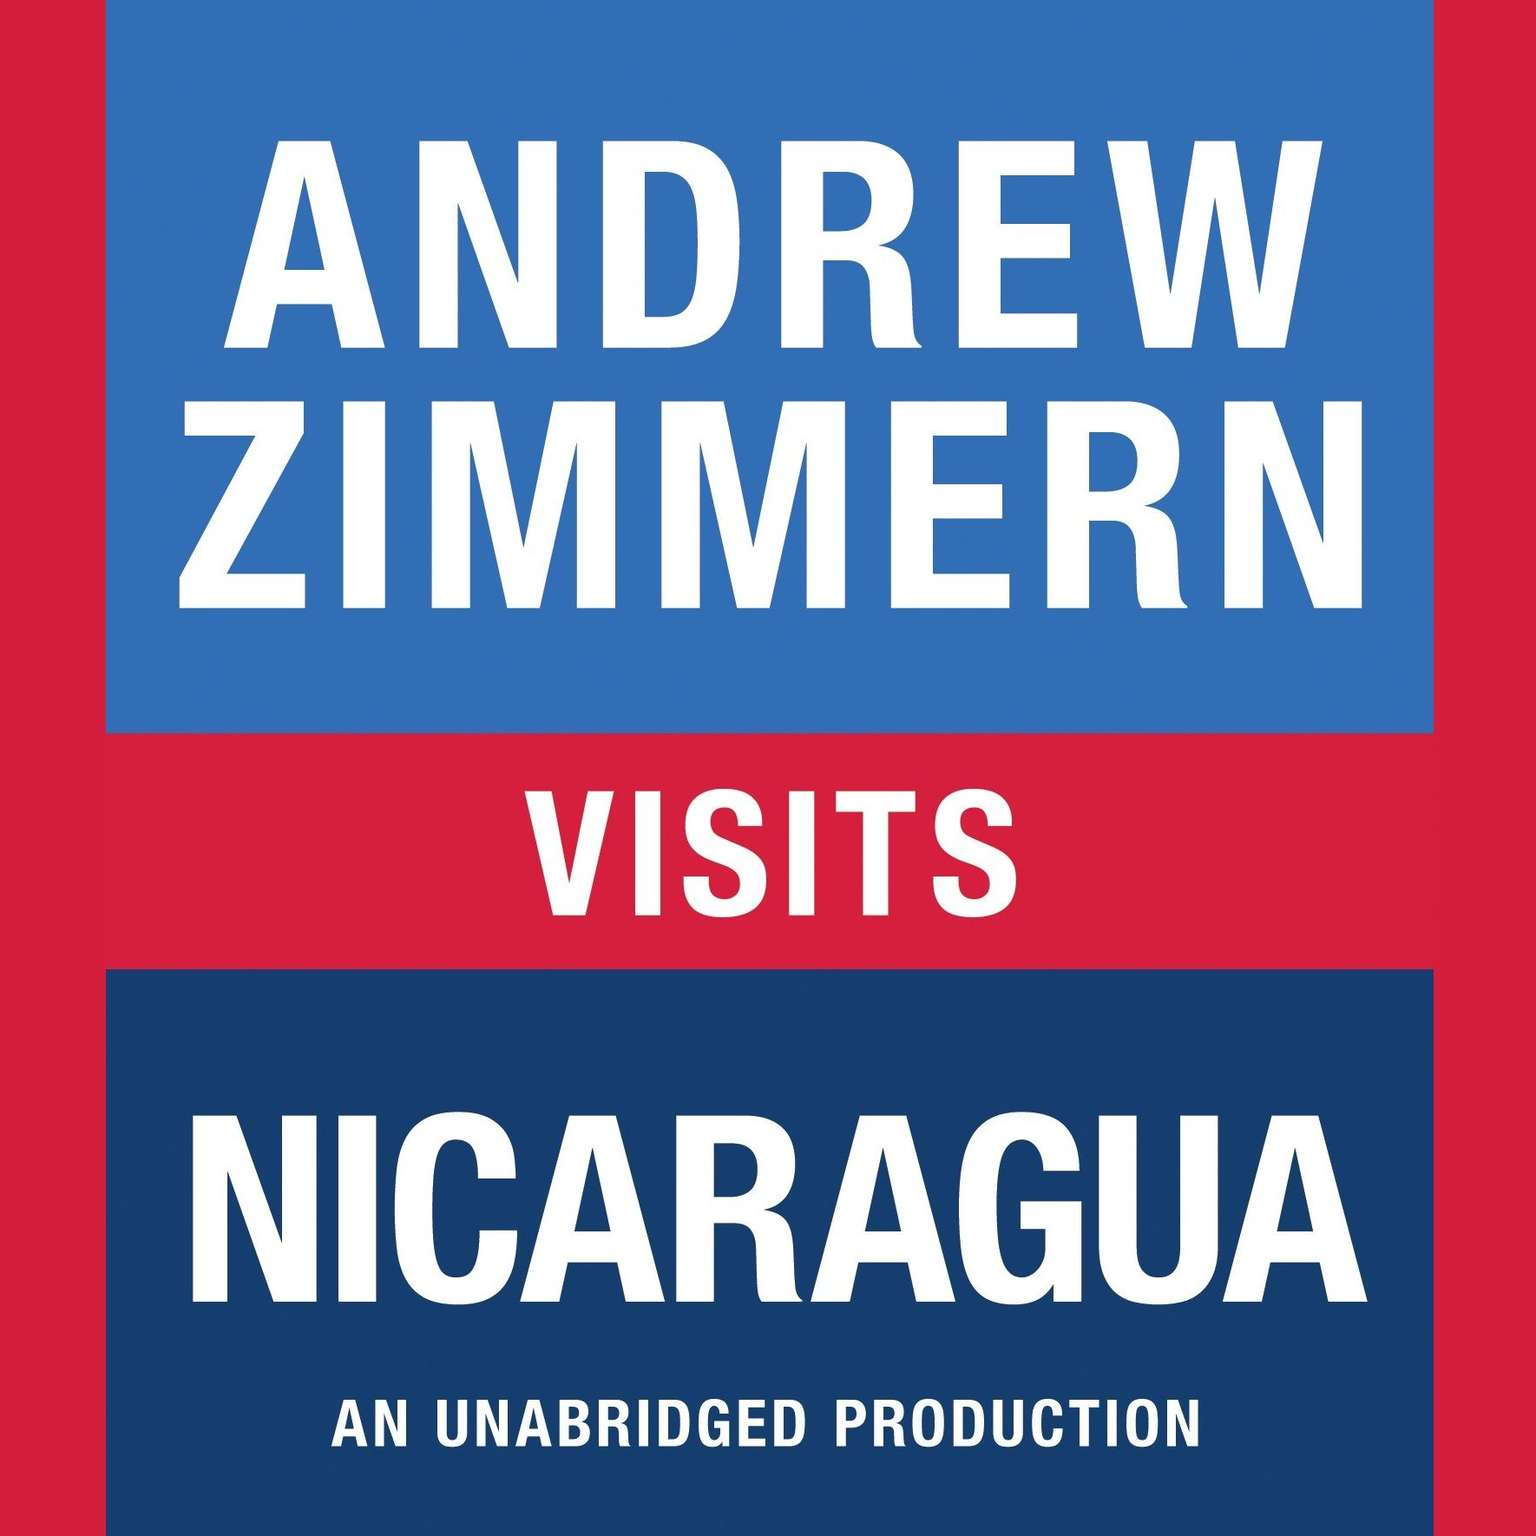 Printable Andrew Zimmern visits Nicaragua: Chapter 8 from THE BIZARRE TRUTH Audiobook Cover Art